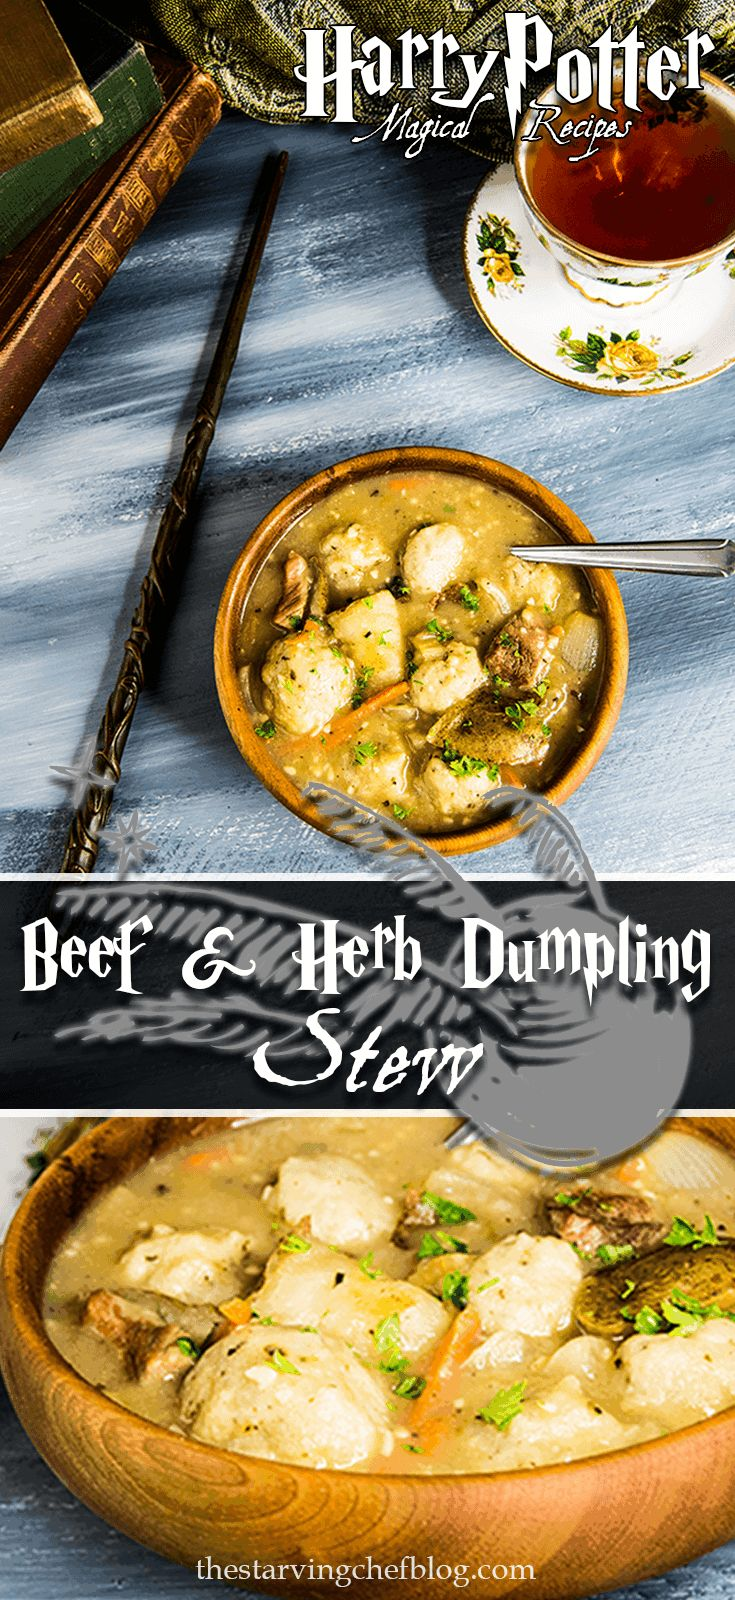 The Starving Chef   Beef & Herb dumpling stew, inspired by the magical world of Harry Potter.